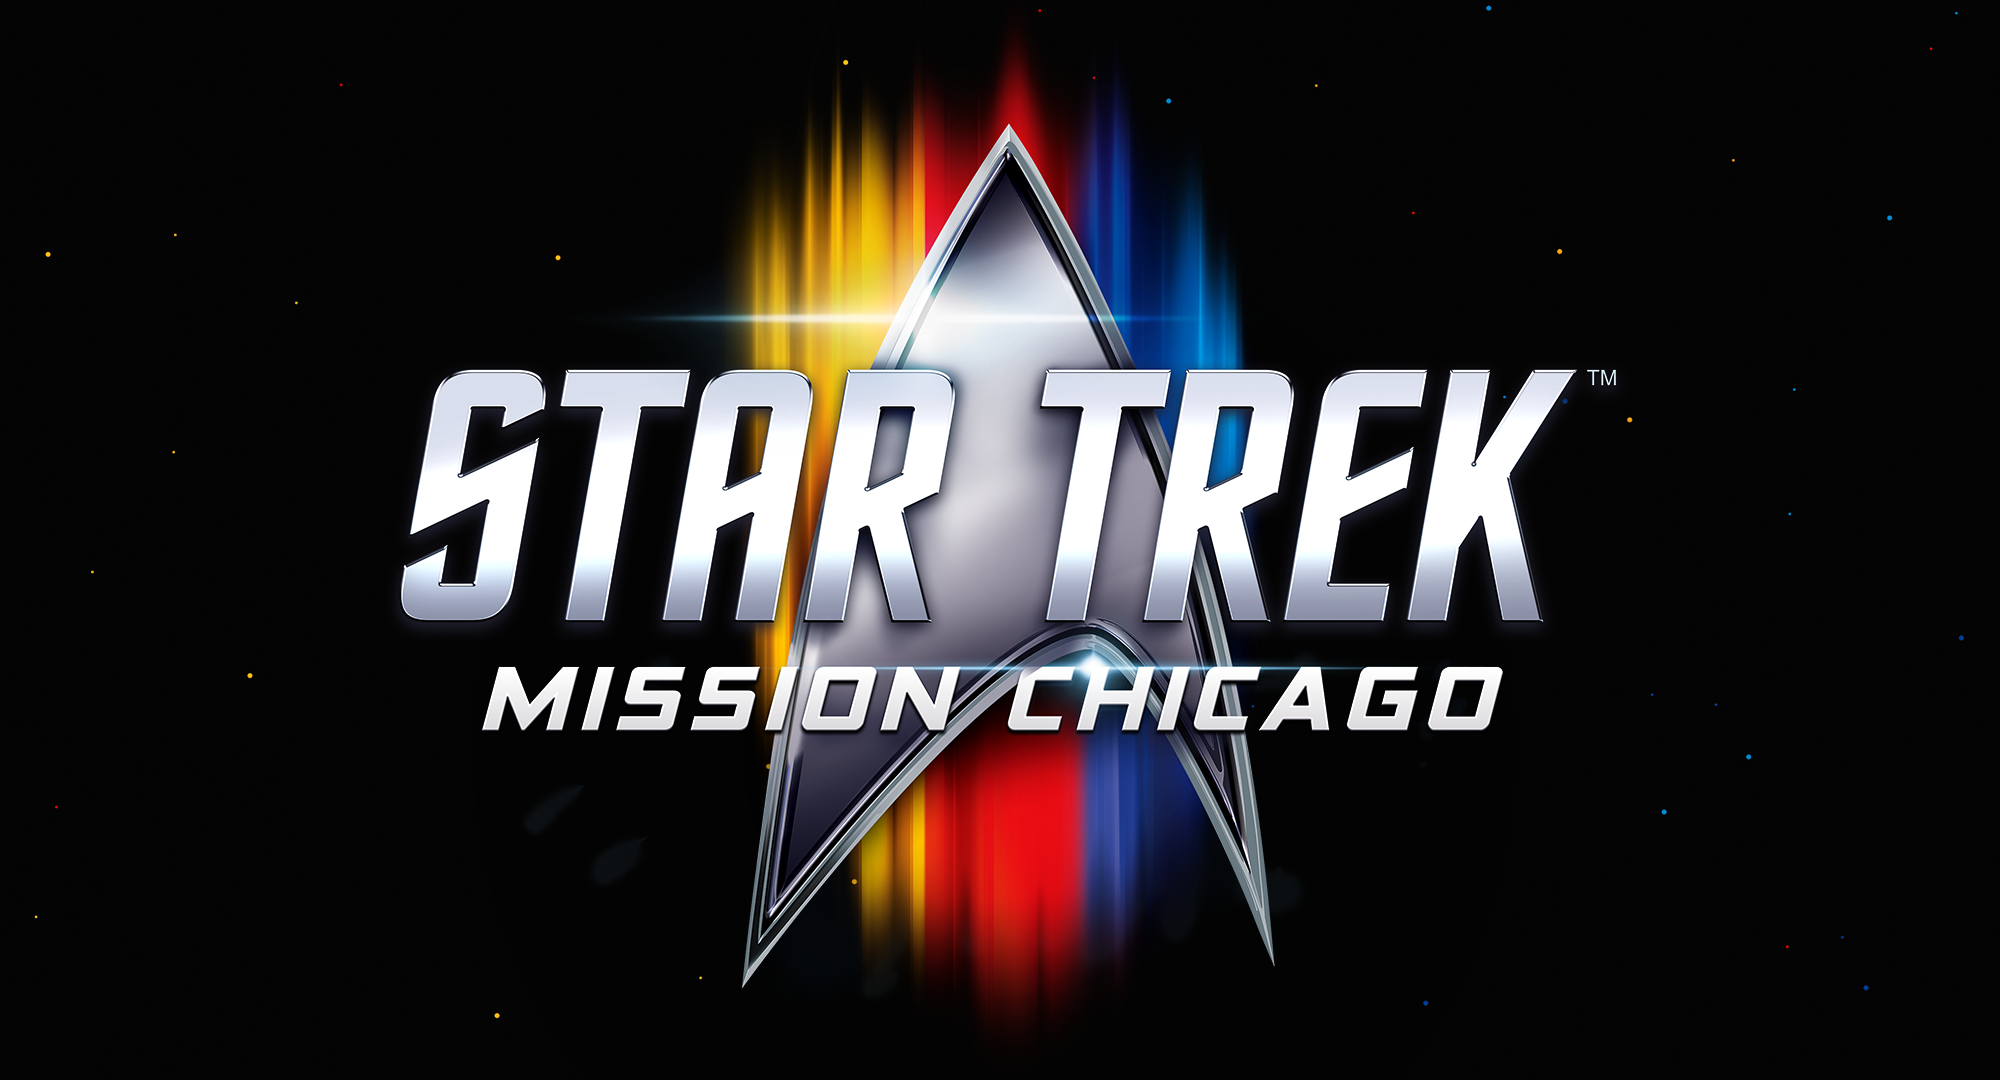 The Star Trek: Mission Chicago logo. The next official Star Trek convention will be held at McCormick Place in downtown Chicago from April 8 to 10, 2022.